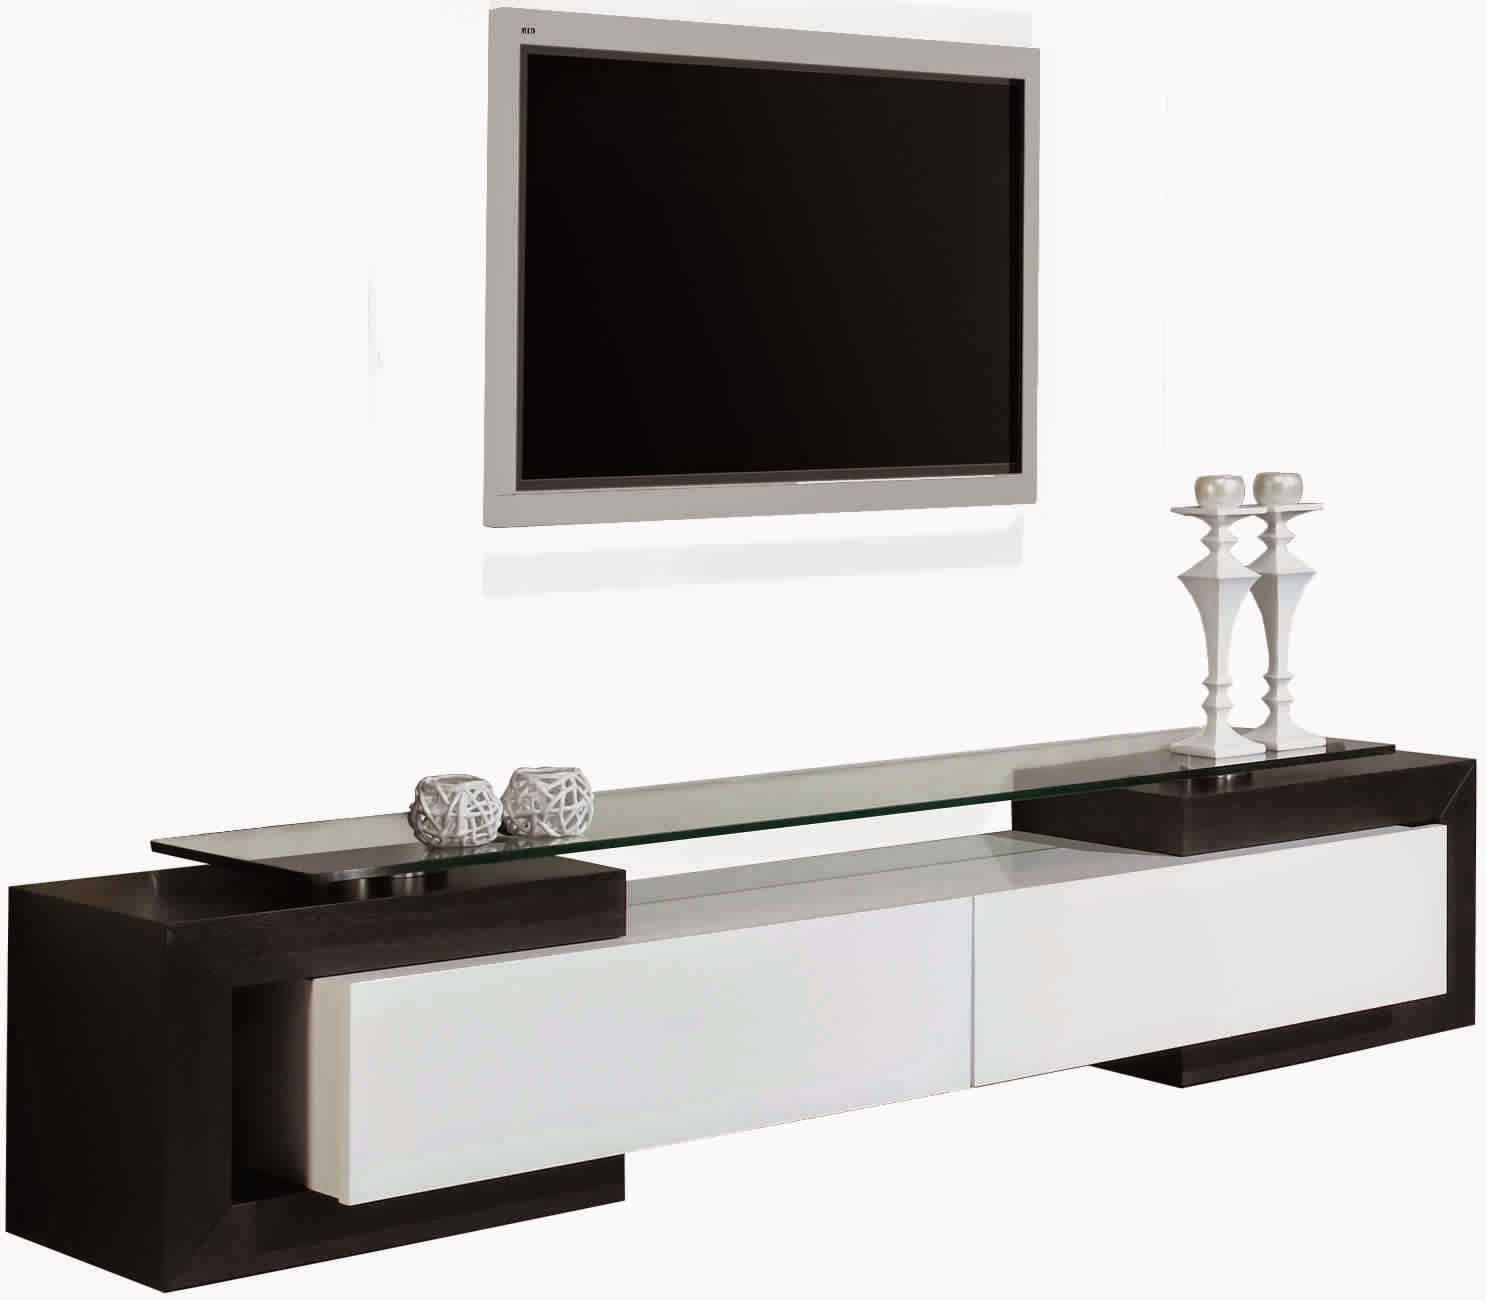 meuble salon cdiscount table basse design solde soldes. Black Bedroom Furniture Sets. Home Design Ideas